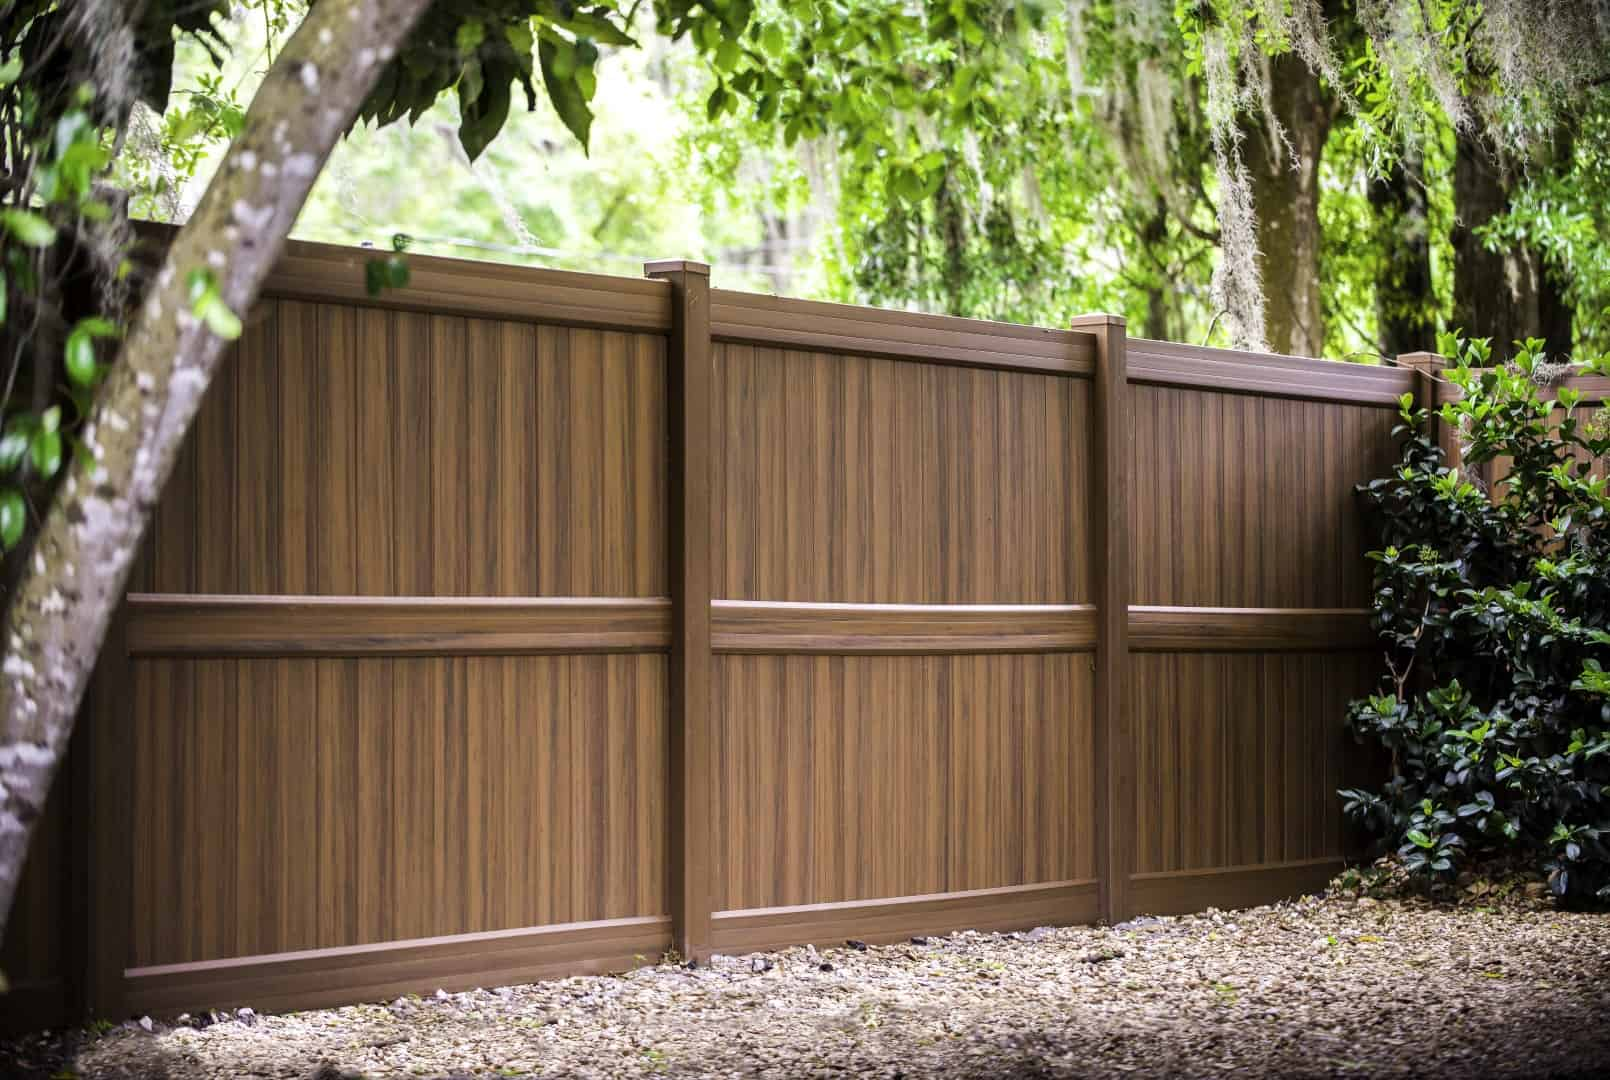 Things to Consider when Hiring a Fencing Company